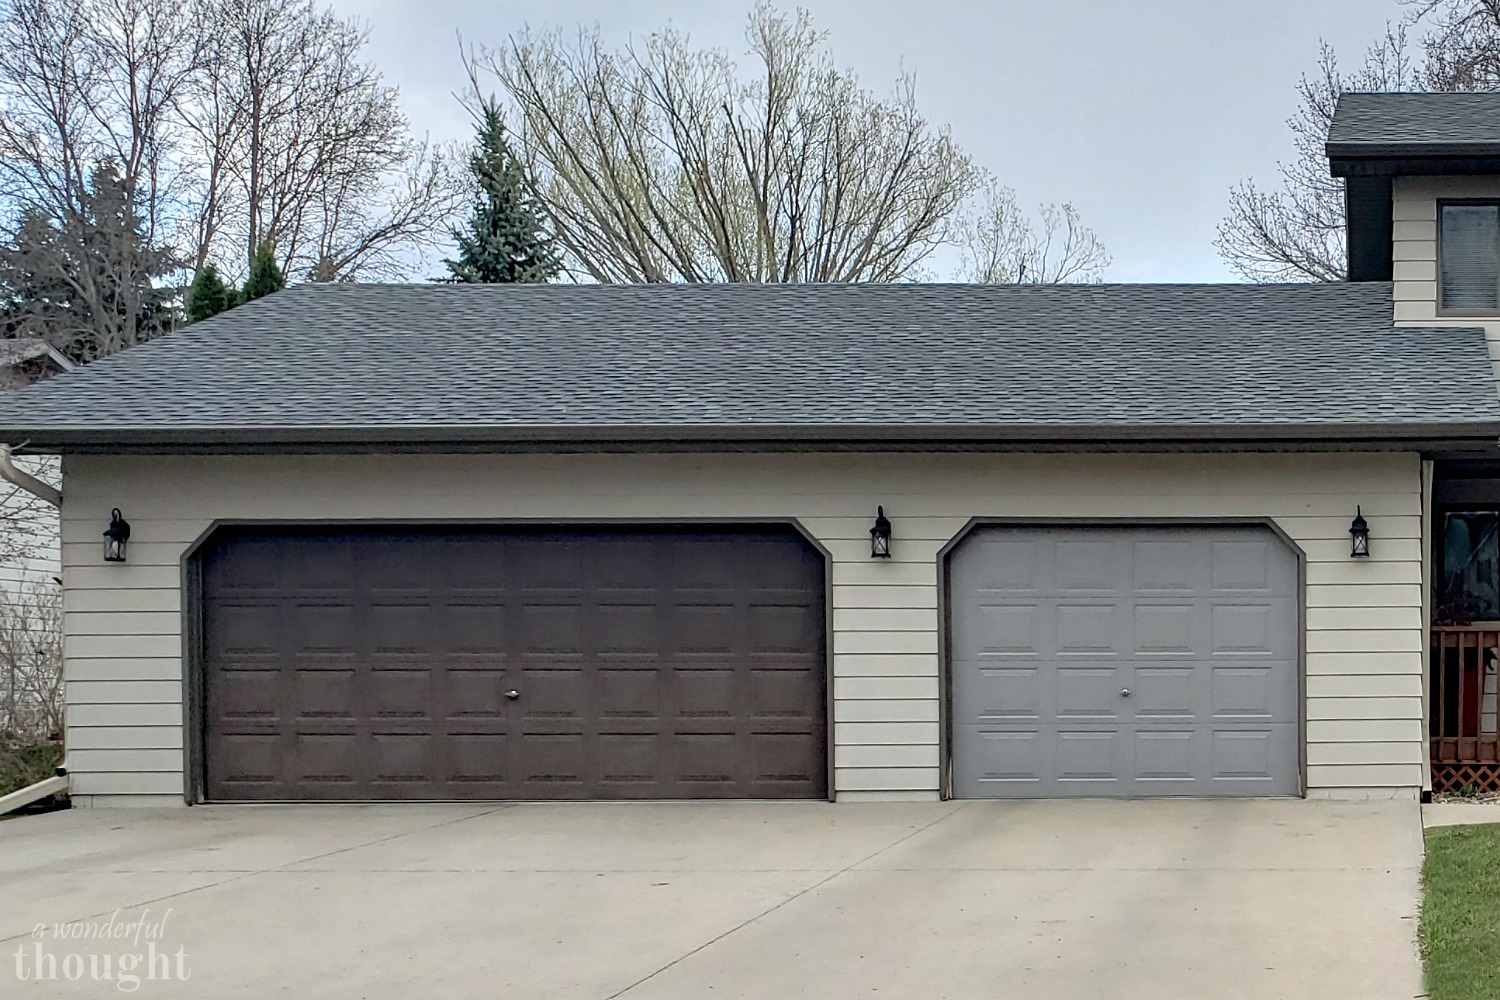 Painting Garage Doors A Wonderful Thought